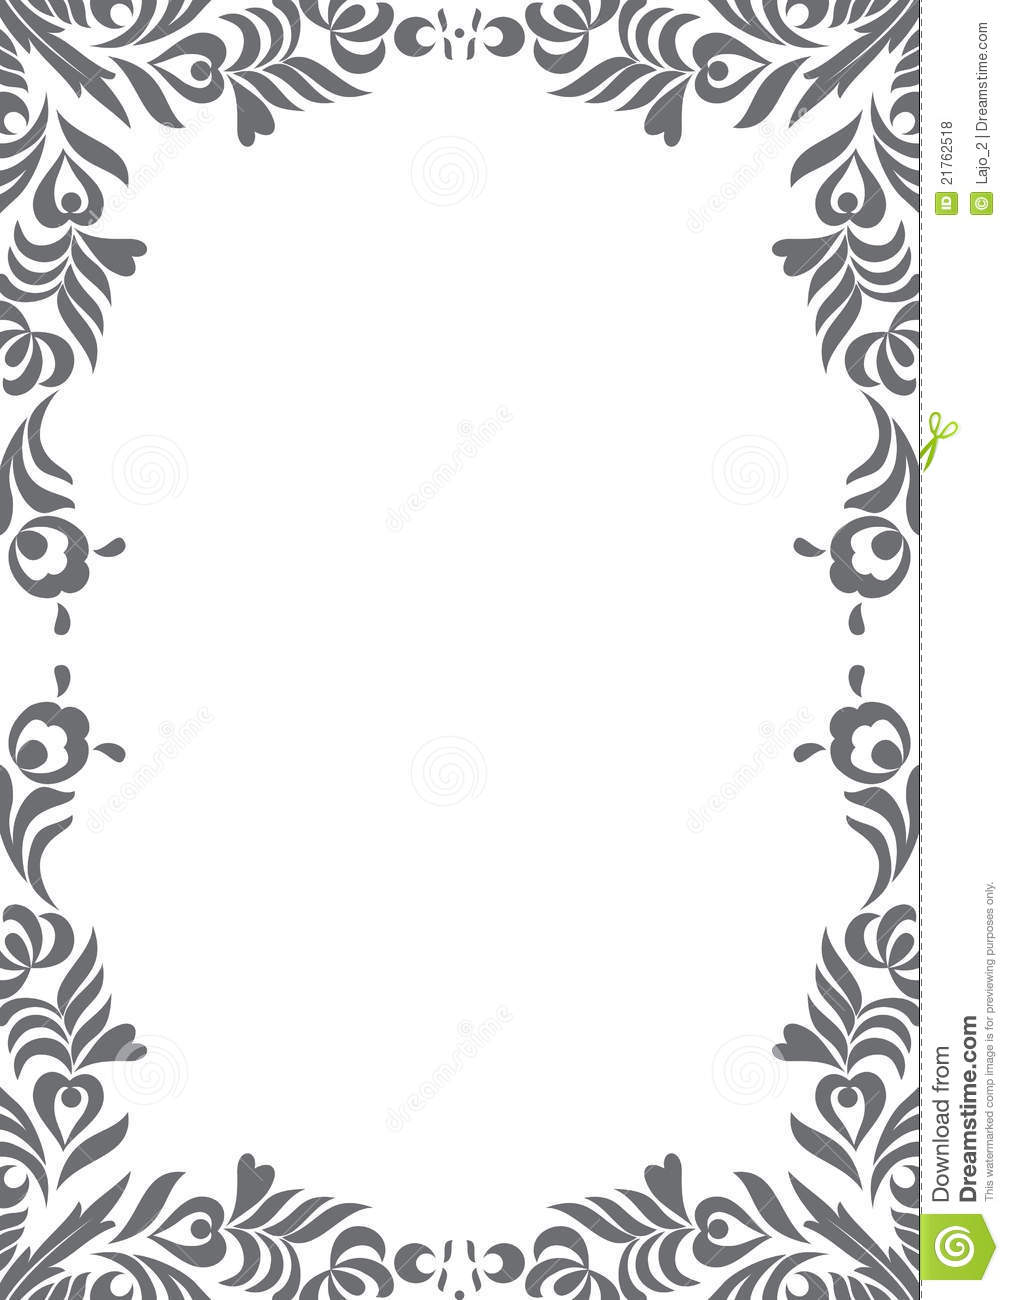 Decorative Black And White Border Royalty Free Stock Photos Image